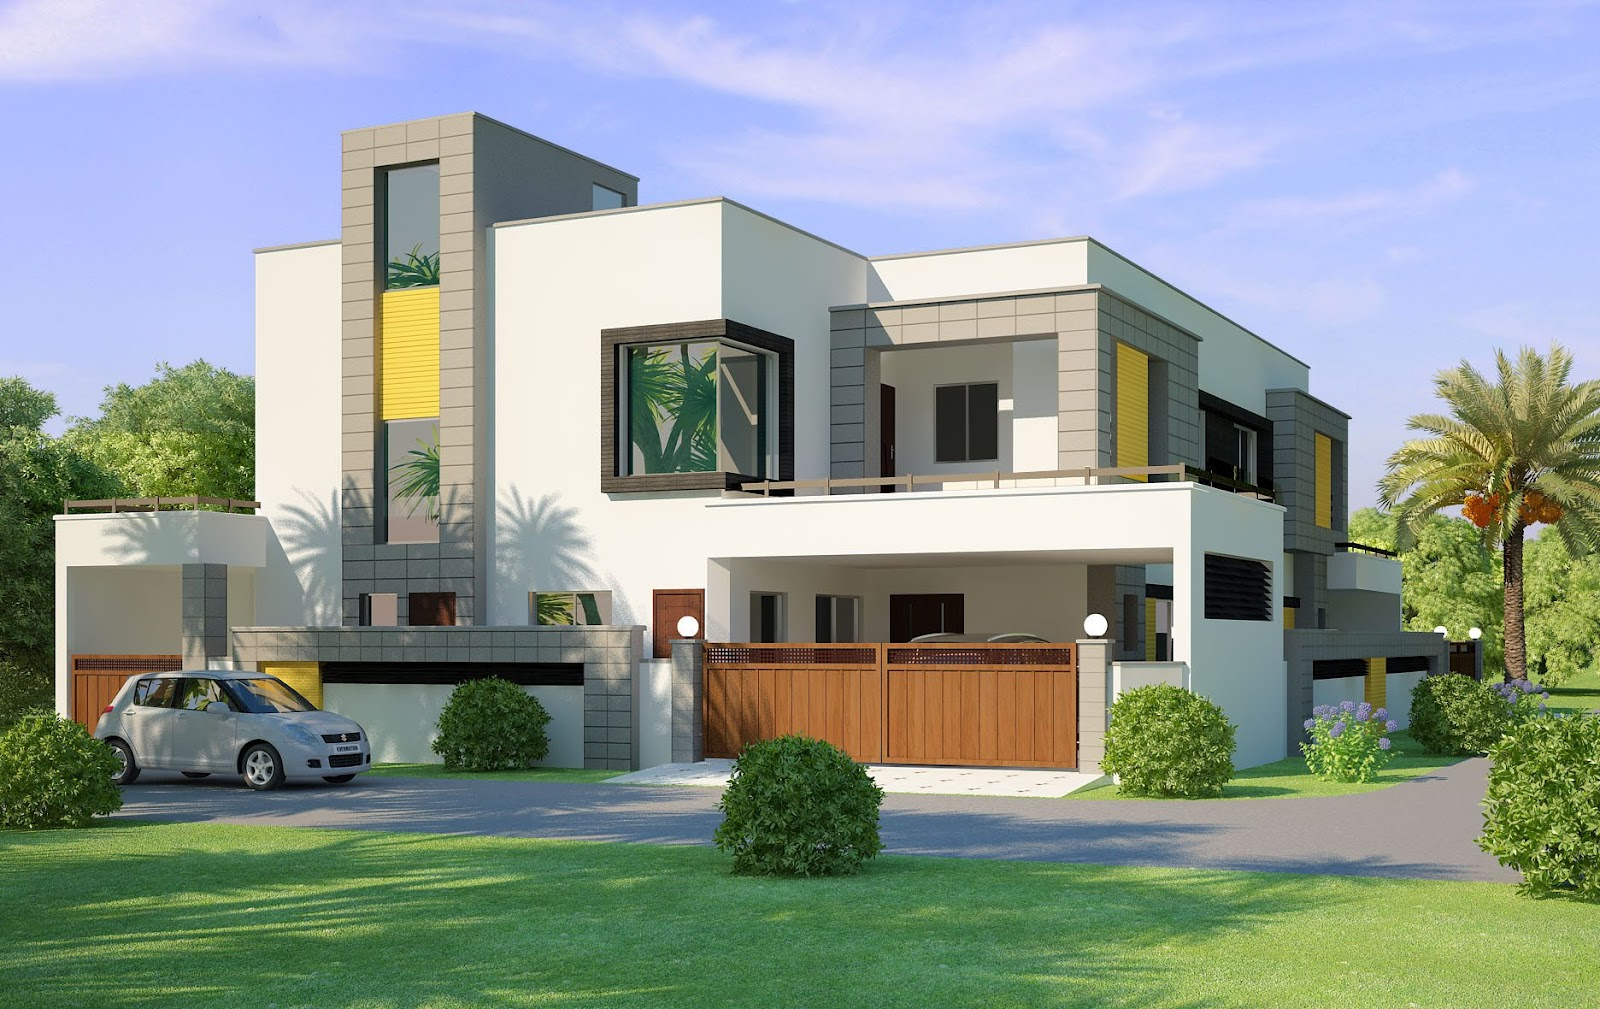 Best front elevation designs 2014 for Elevation design photos residential houses